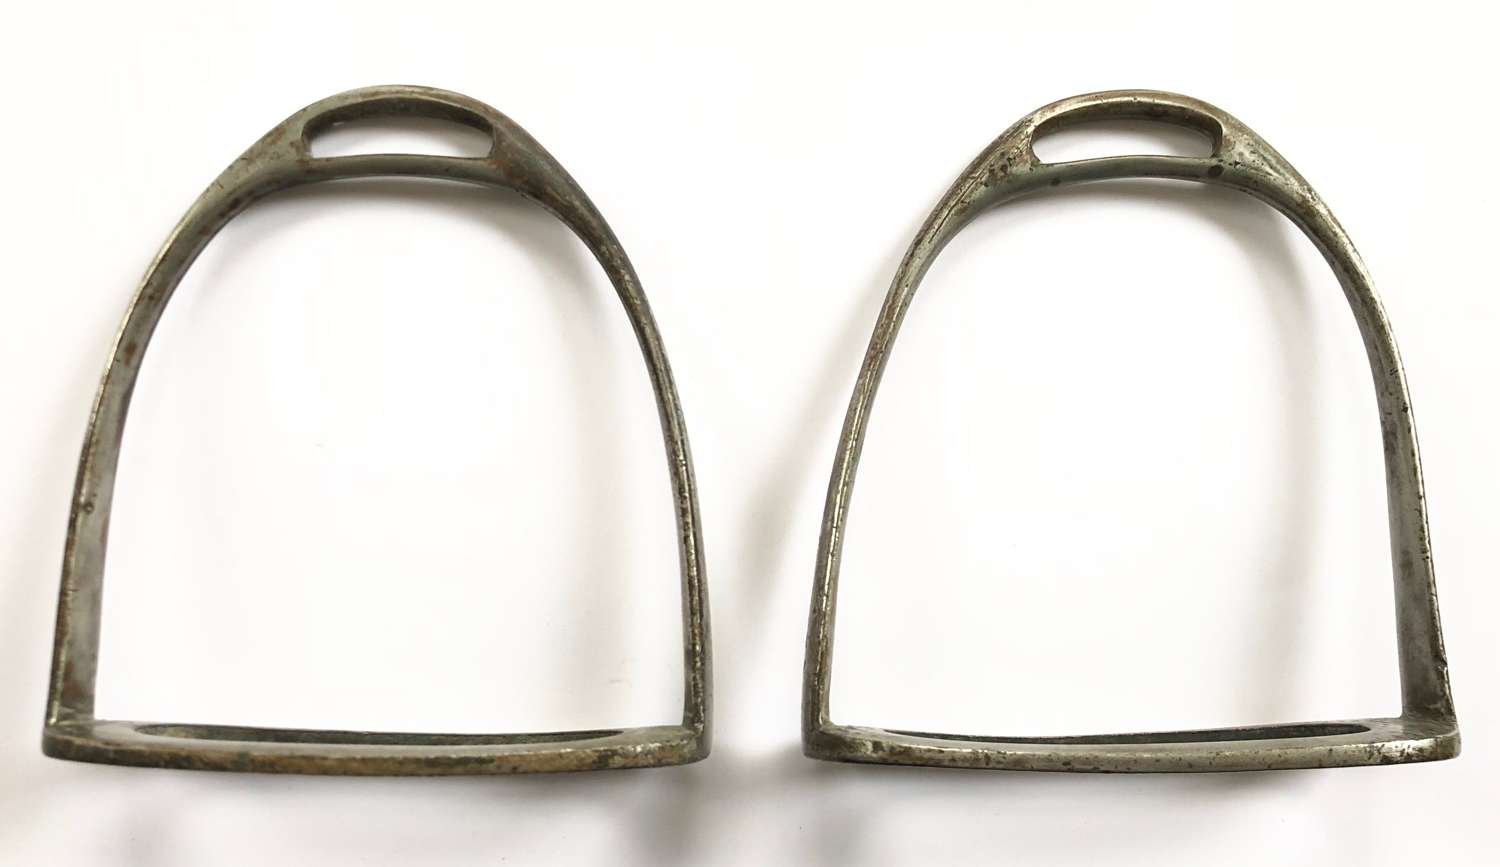 WW1 Period British Army Stirrups